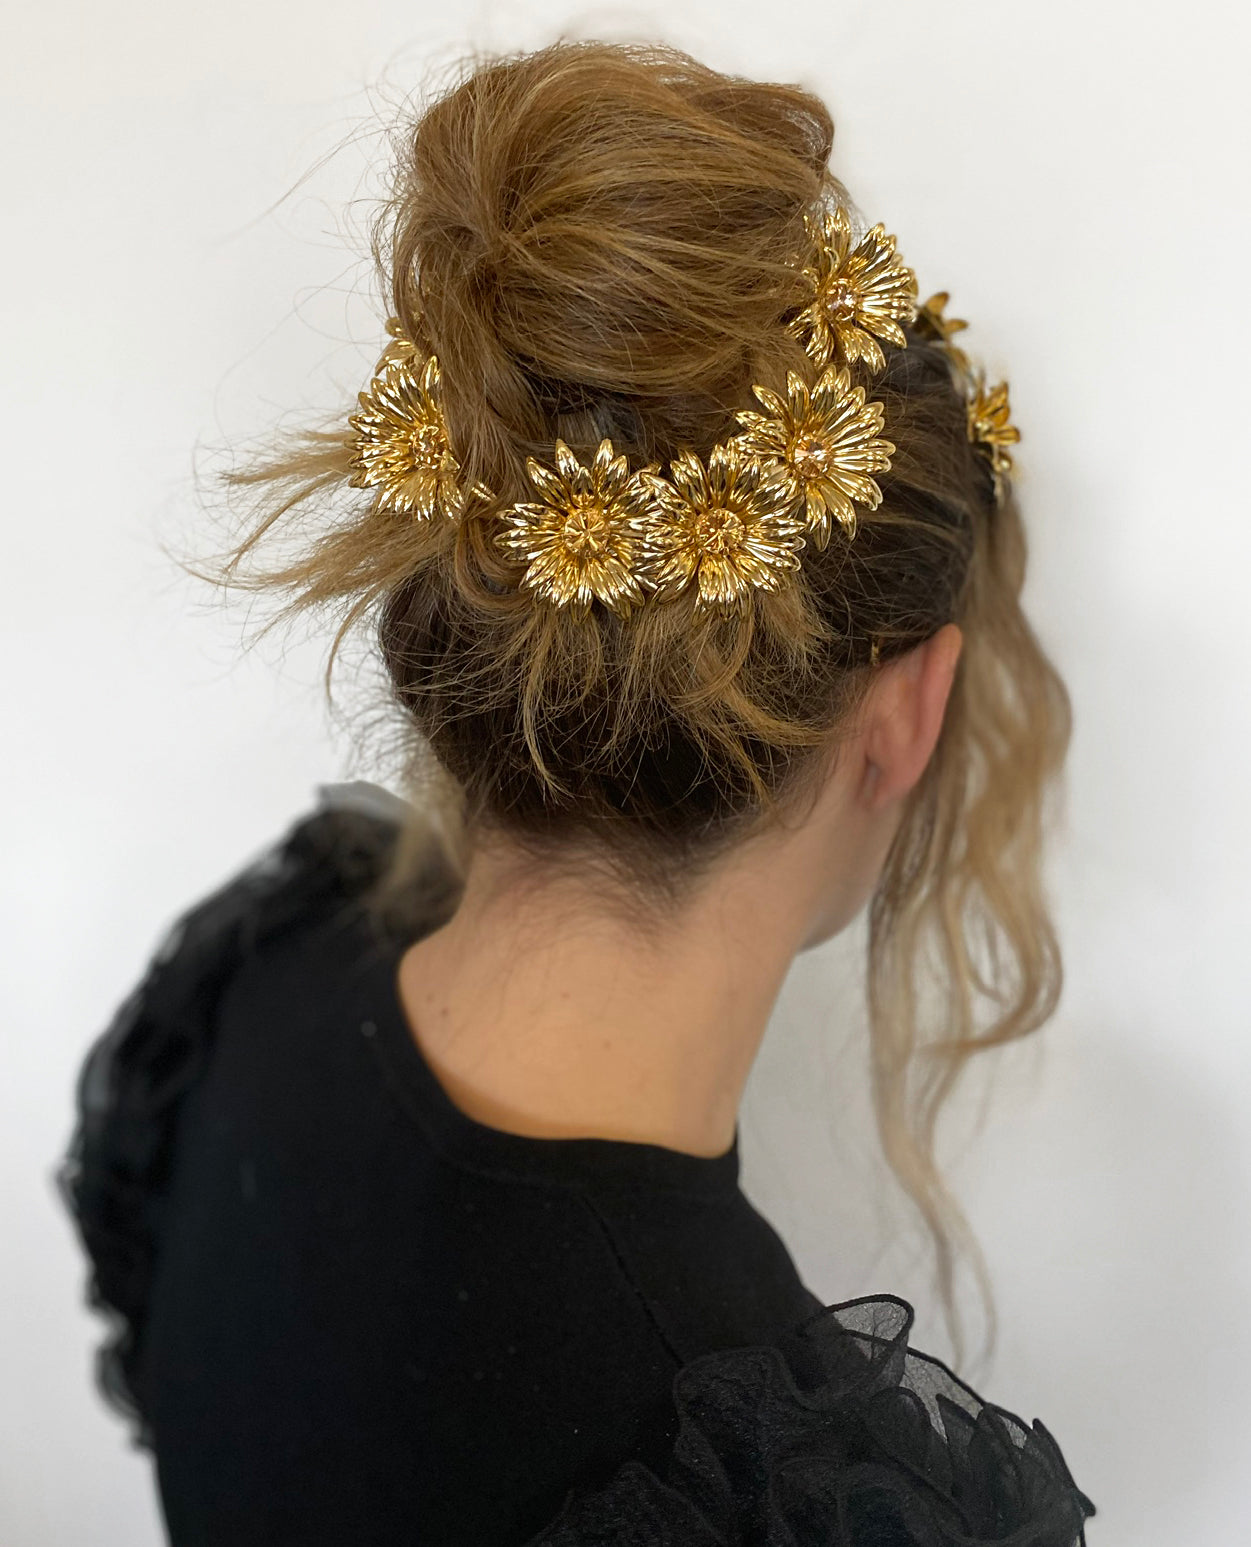 THE SUNFLOWER BARRETTE